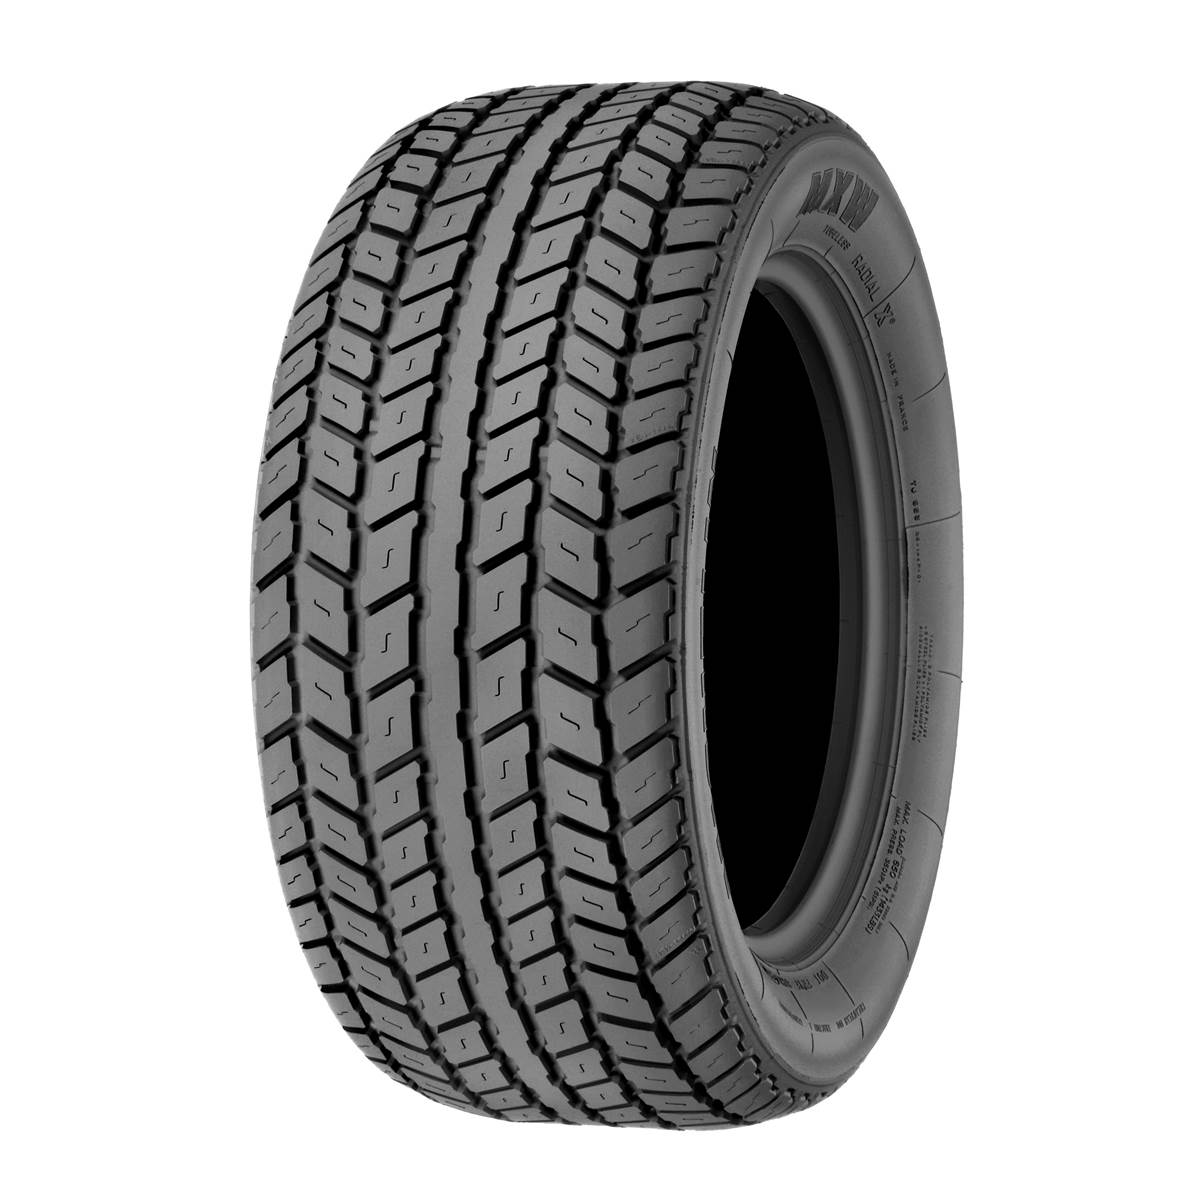 Pneu Michelin Collection 255/45R15 93W Mxw